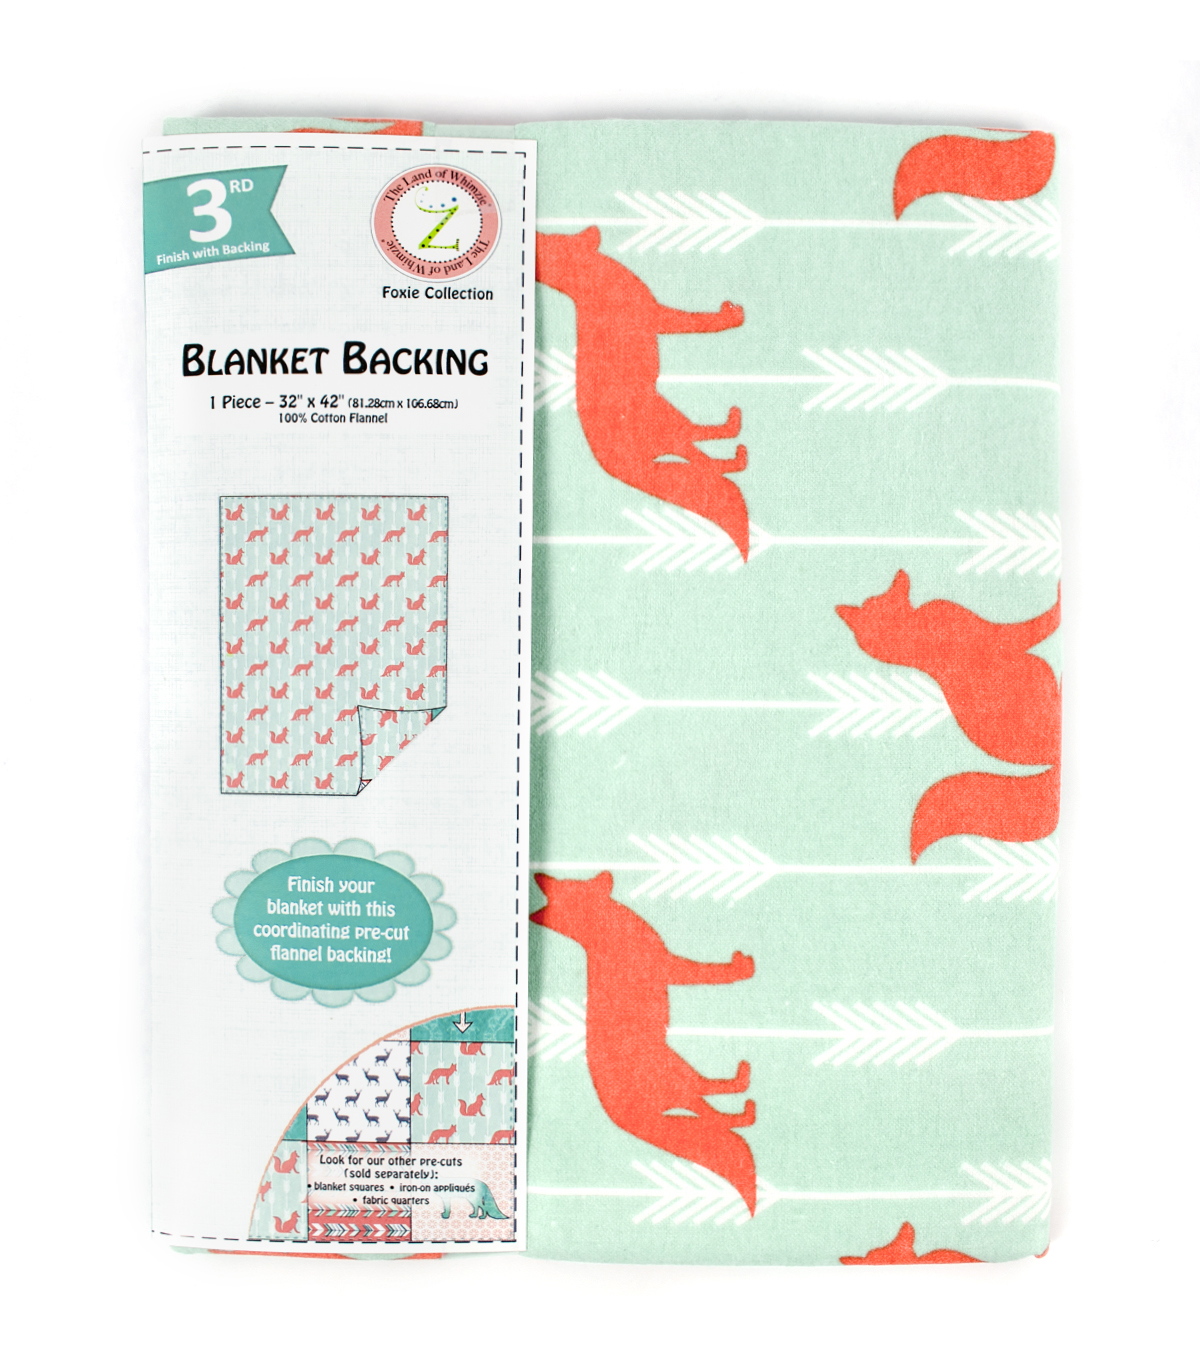 Land of Whimzie Foxie Flannel Blanket Backing - 1 piece 32\u0022 x 42\u0022